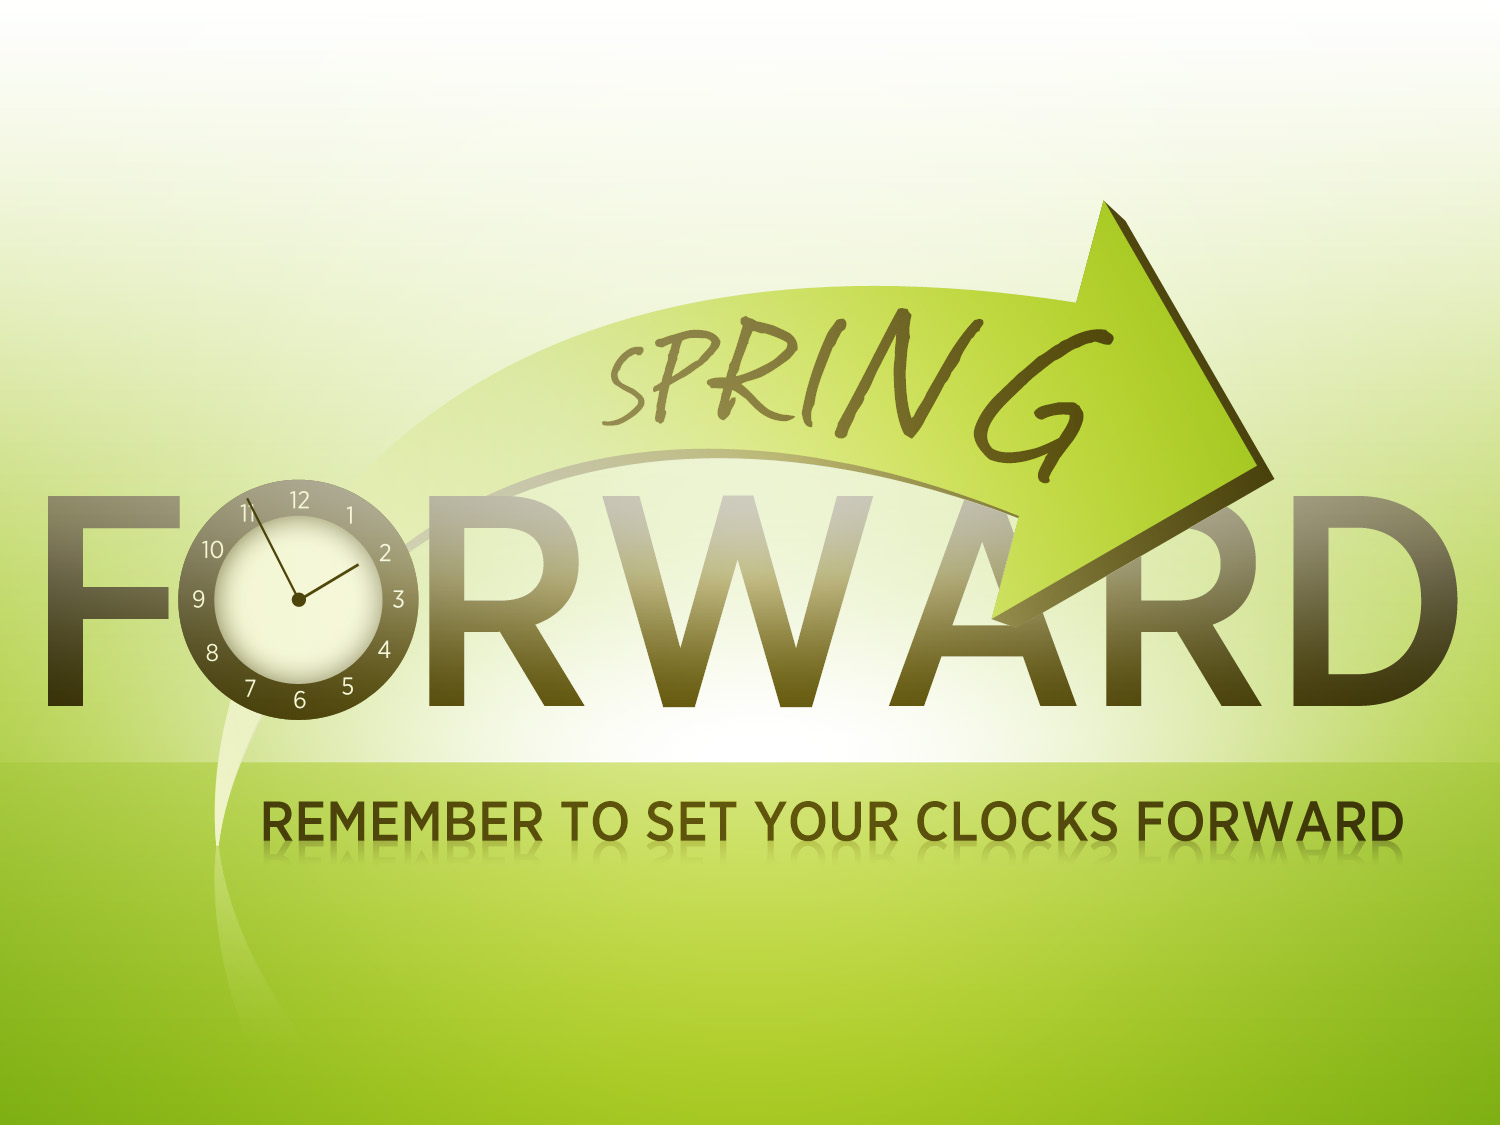 2017 clipart spring forward. Station